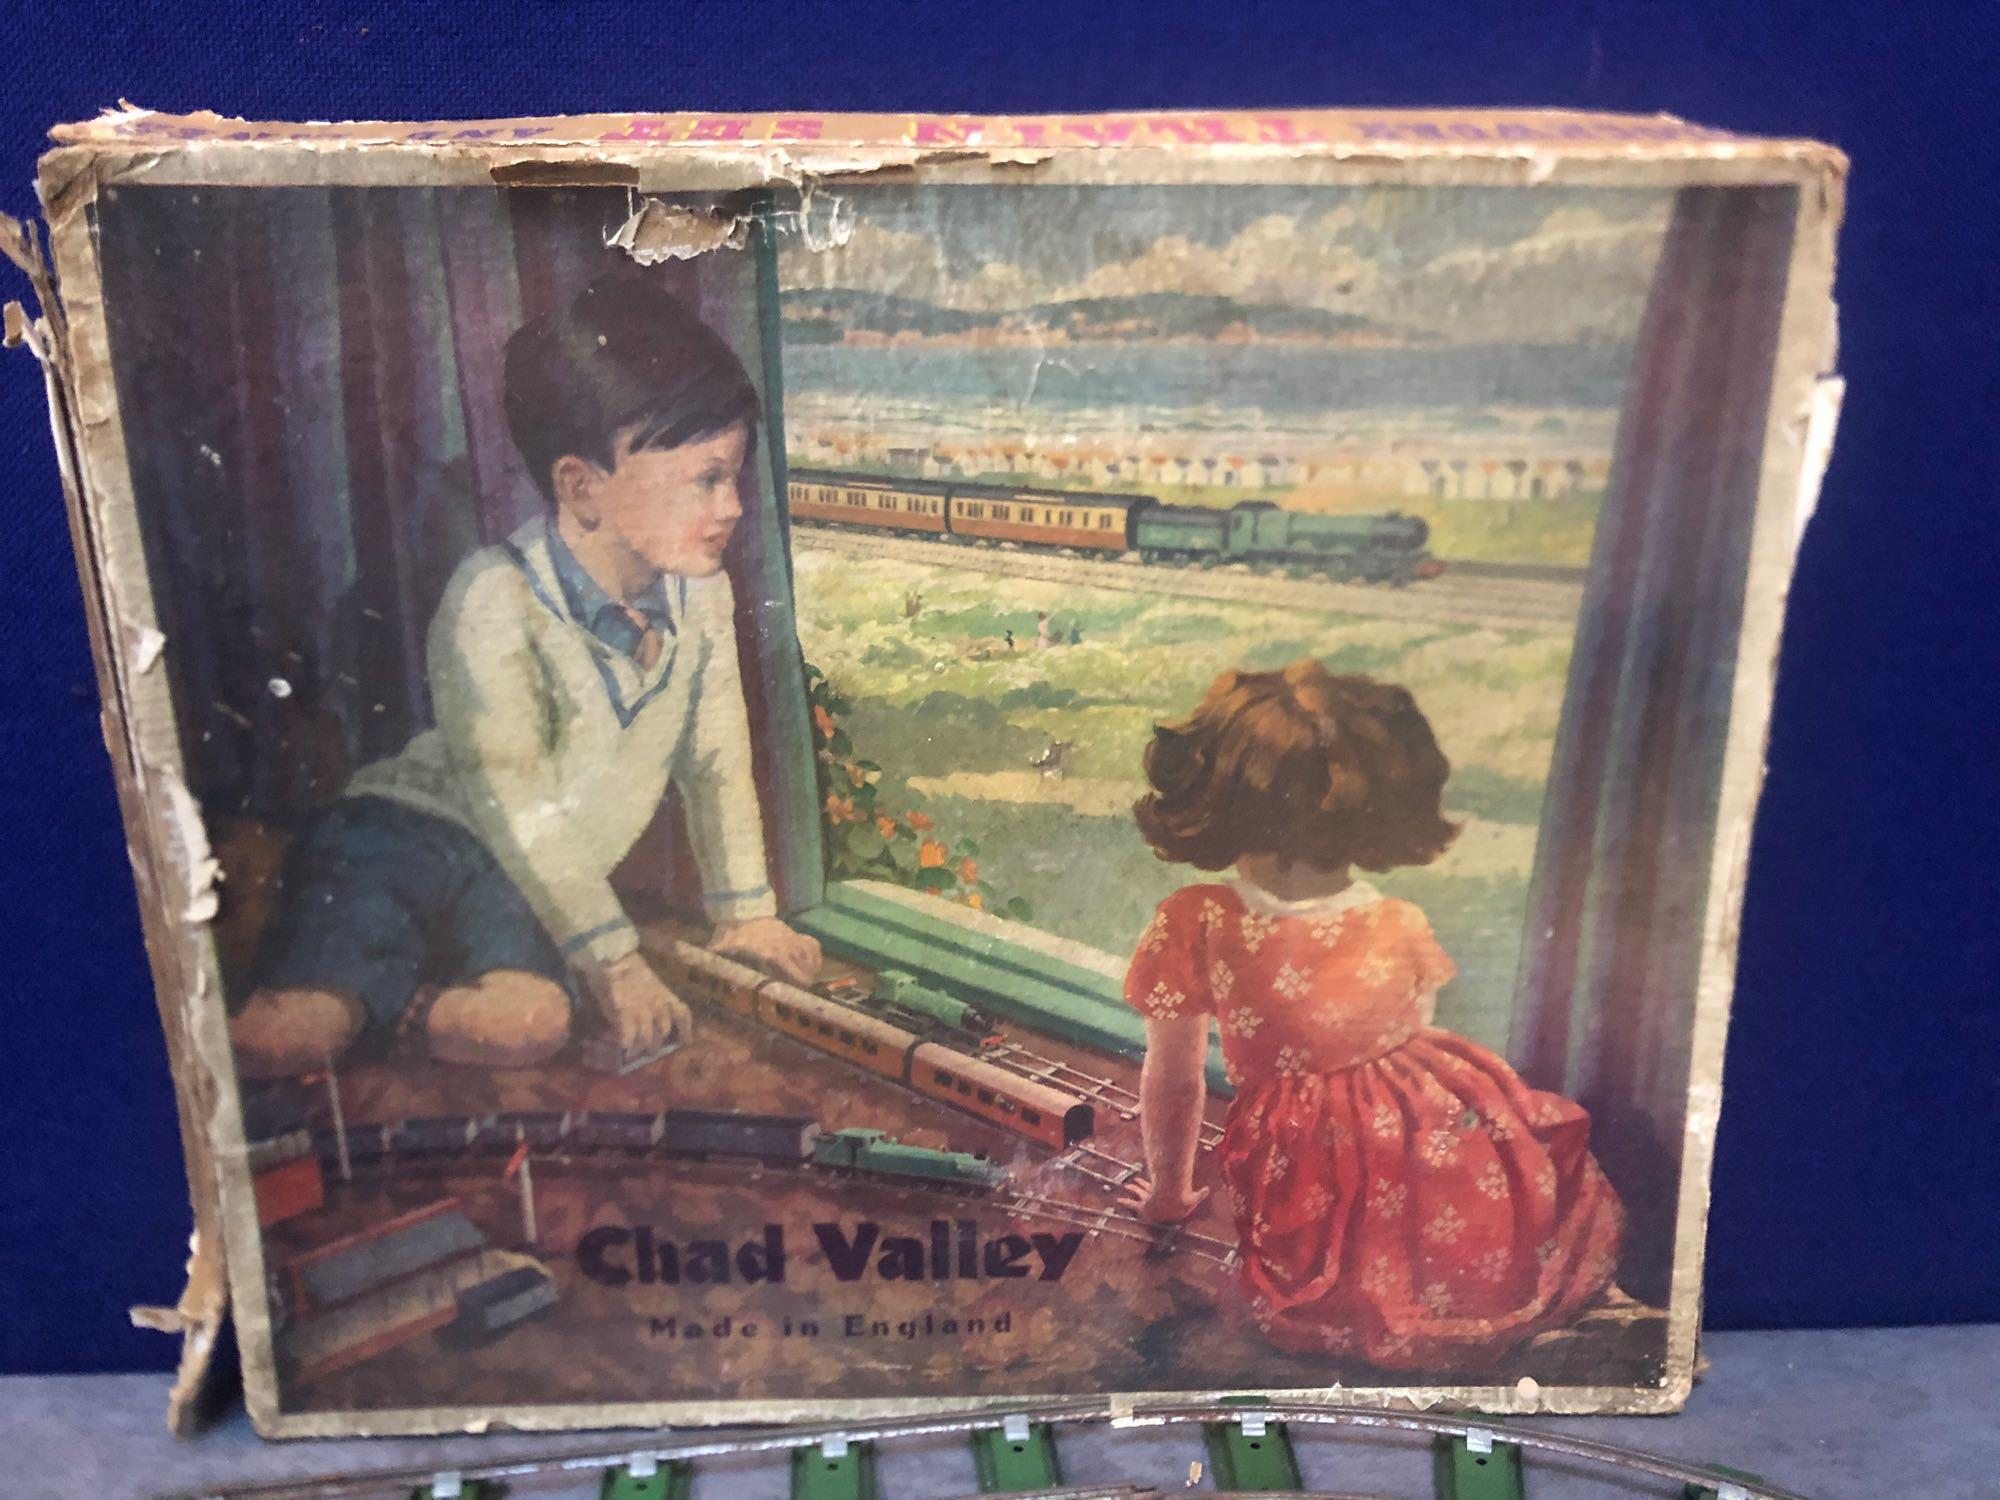 Chad Valley Vintage Clockwork Train Set And Lines In Original Box Circa 1930s - Image 2 of 3